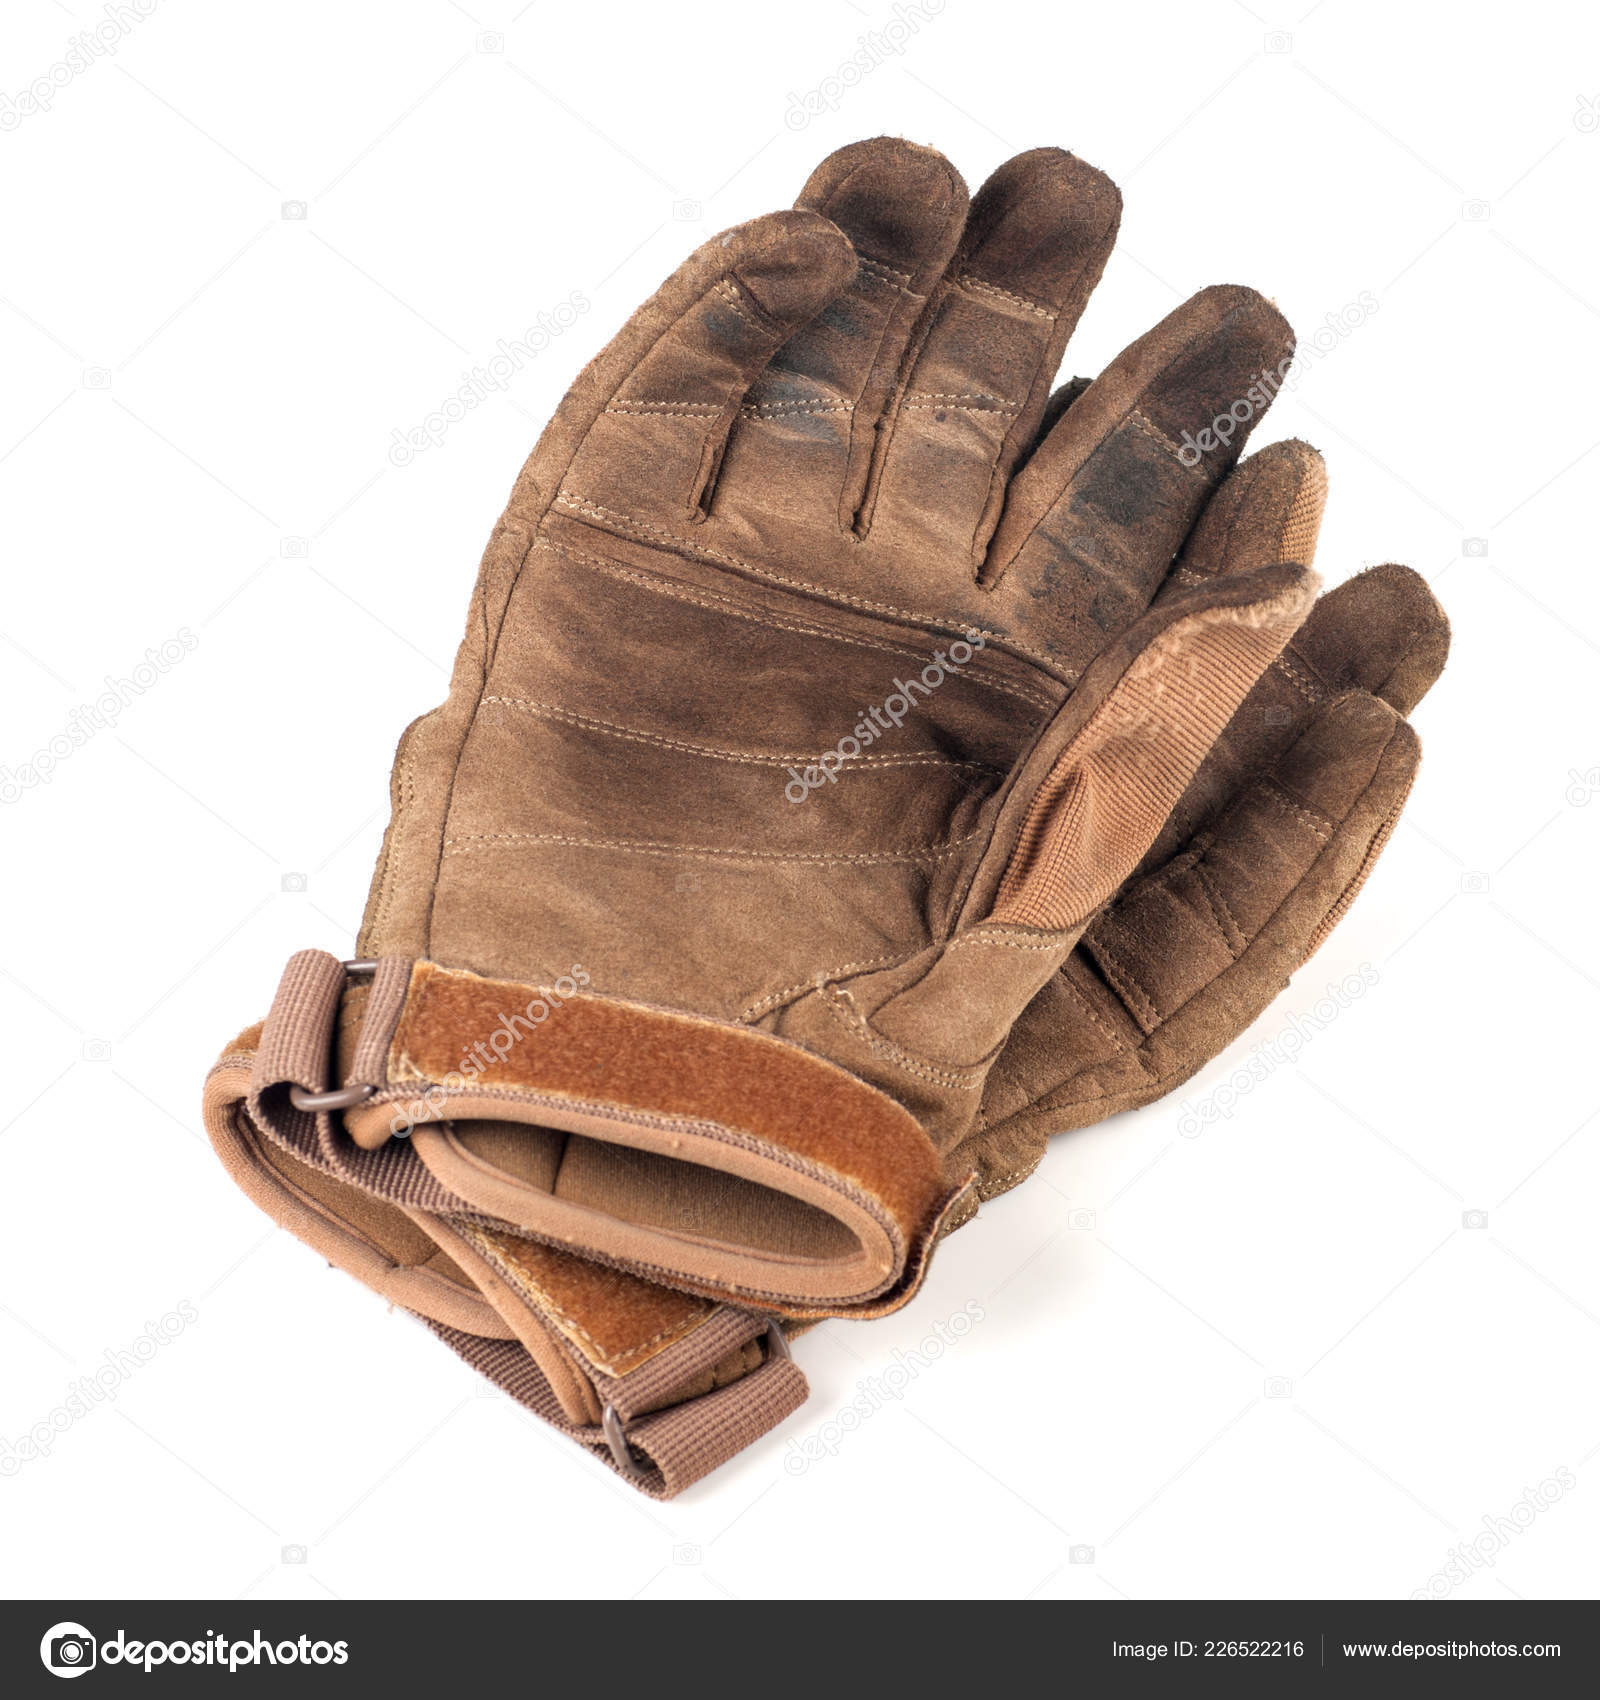 depositphotos_226522216-stock-photo-old-gloves-leather-brown-isolated.jpg